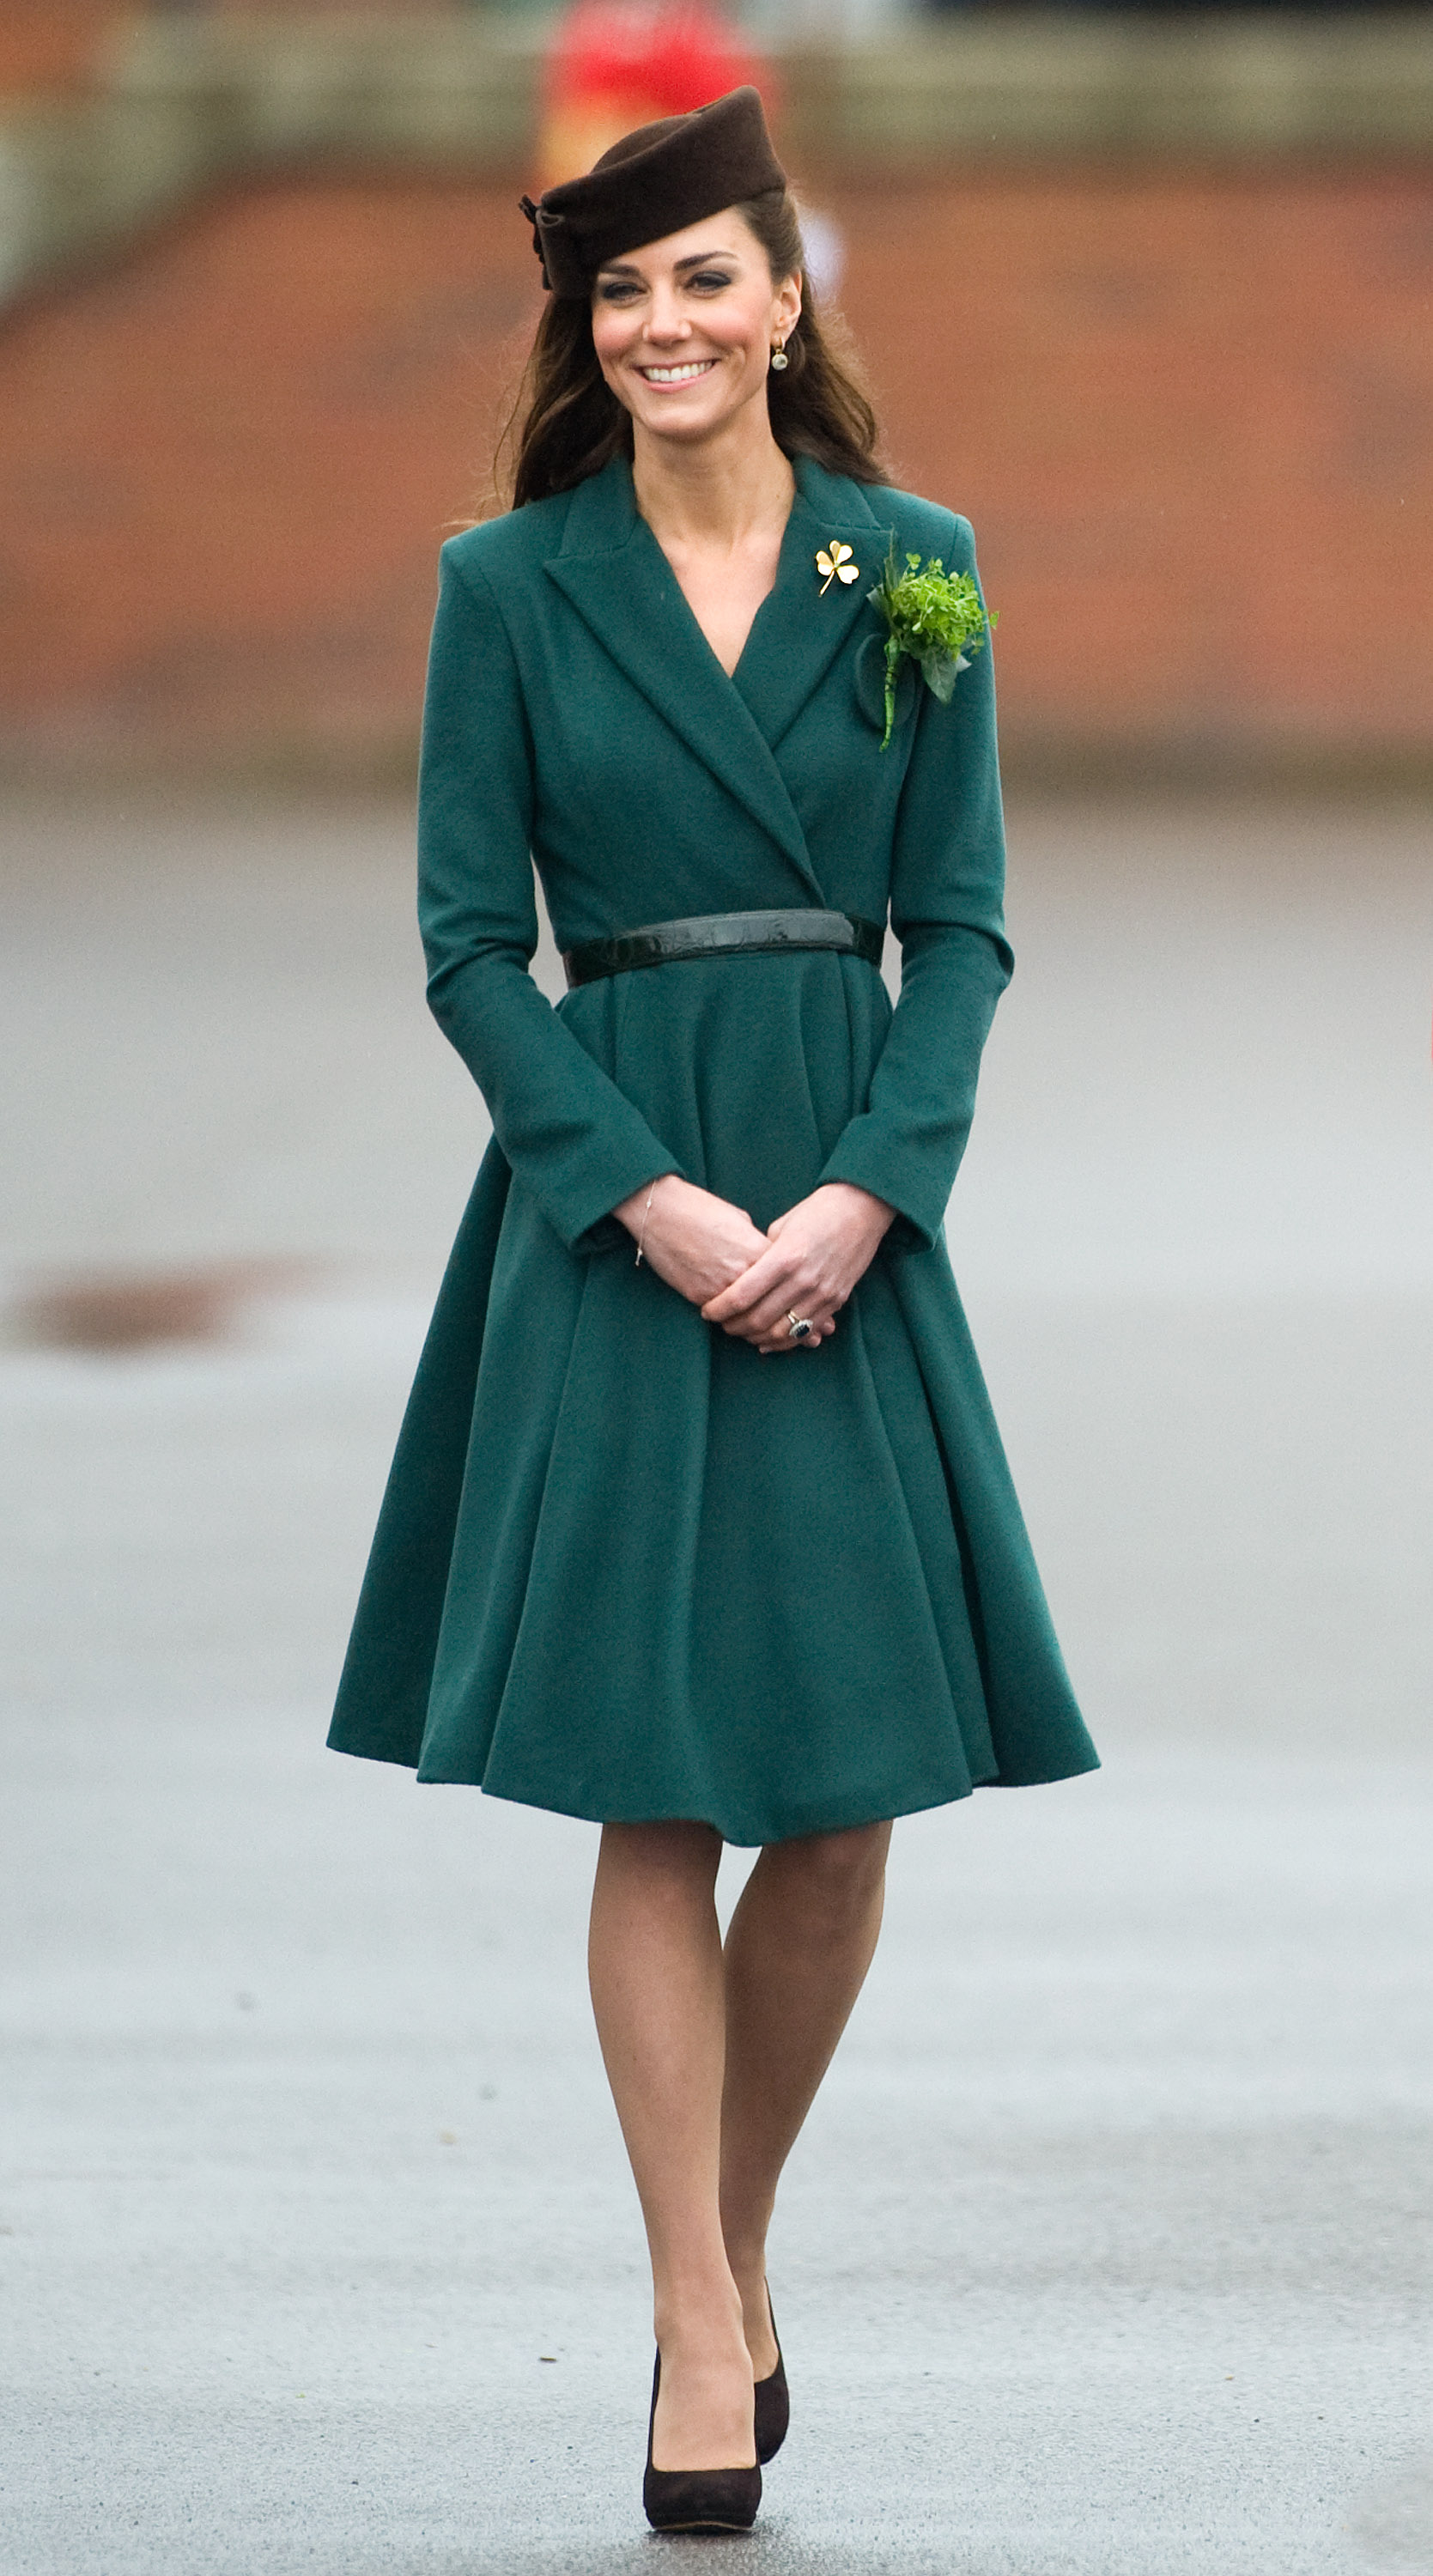 <strong> O'Middleton</strong>                                   The Duchess celebrated St. Patrick's Day on March 17, 2012 in a dark green Emilia Wickstead dress. She took part in a parade and presented shamrocks to the Irish Guards at Aldershot Barracks as part of her official events.